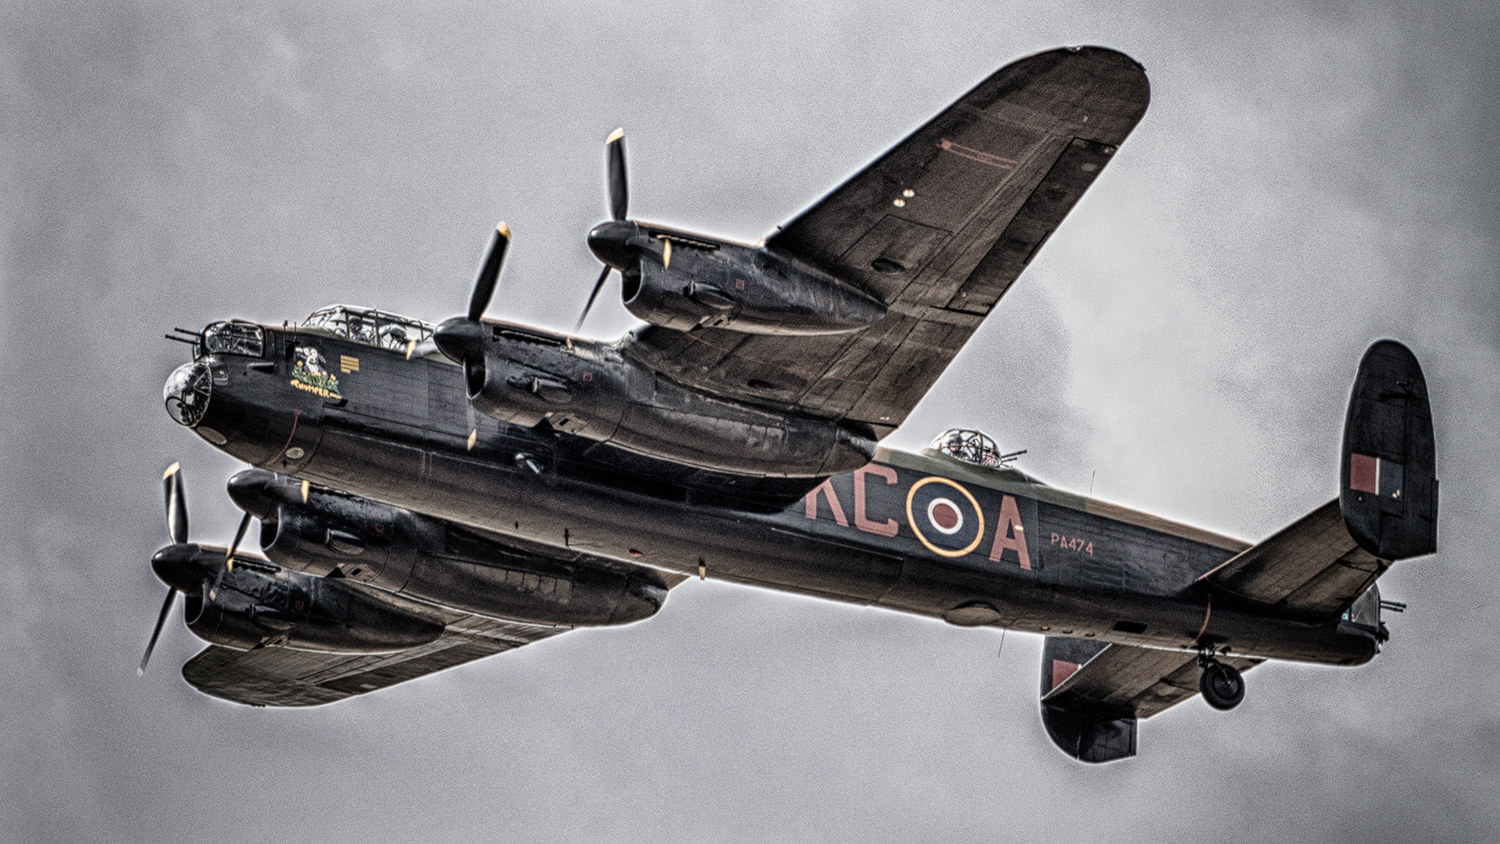 Managing the logistics for an airshow is very tricky business and made even harder when some of the performers fly in from another airfield to display and then fly away - the timing has to be perfect! Here a pair of Lancaster's flew over the show immediately following a memorial prayer service to honor those who have died in service to their country.